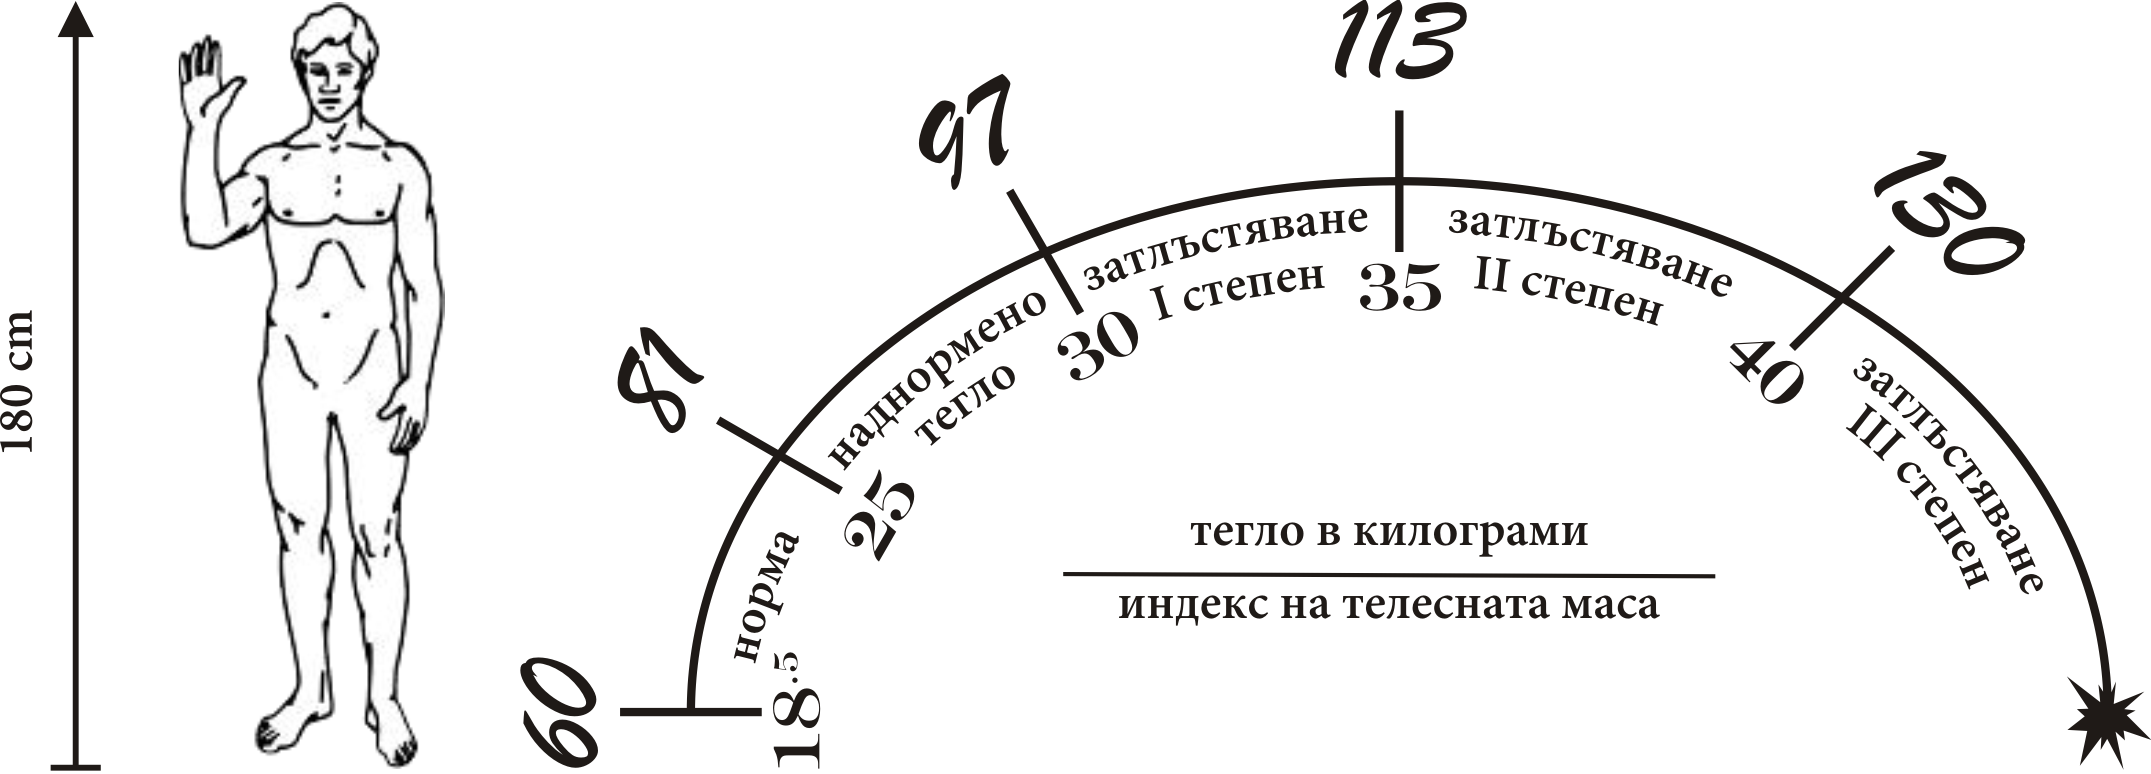 File:BMI 180 cm height.png - Wikimedia Commons